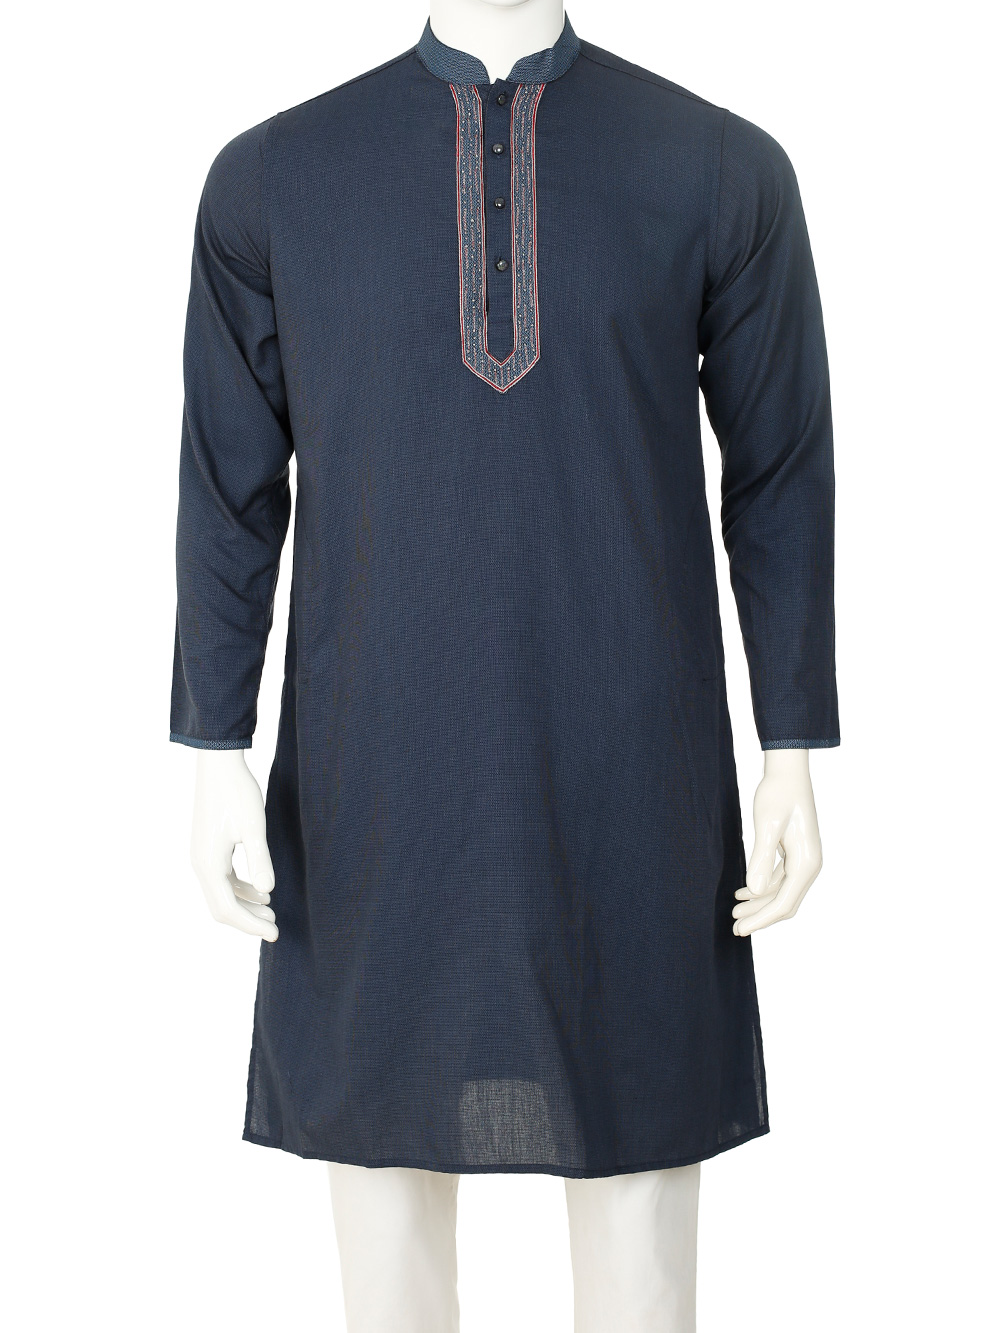 MEN'S SLIM FITTED PANJABI